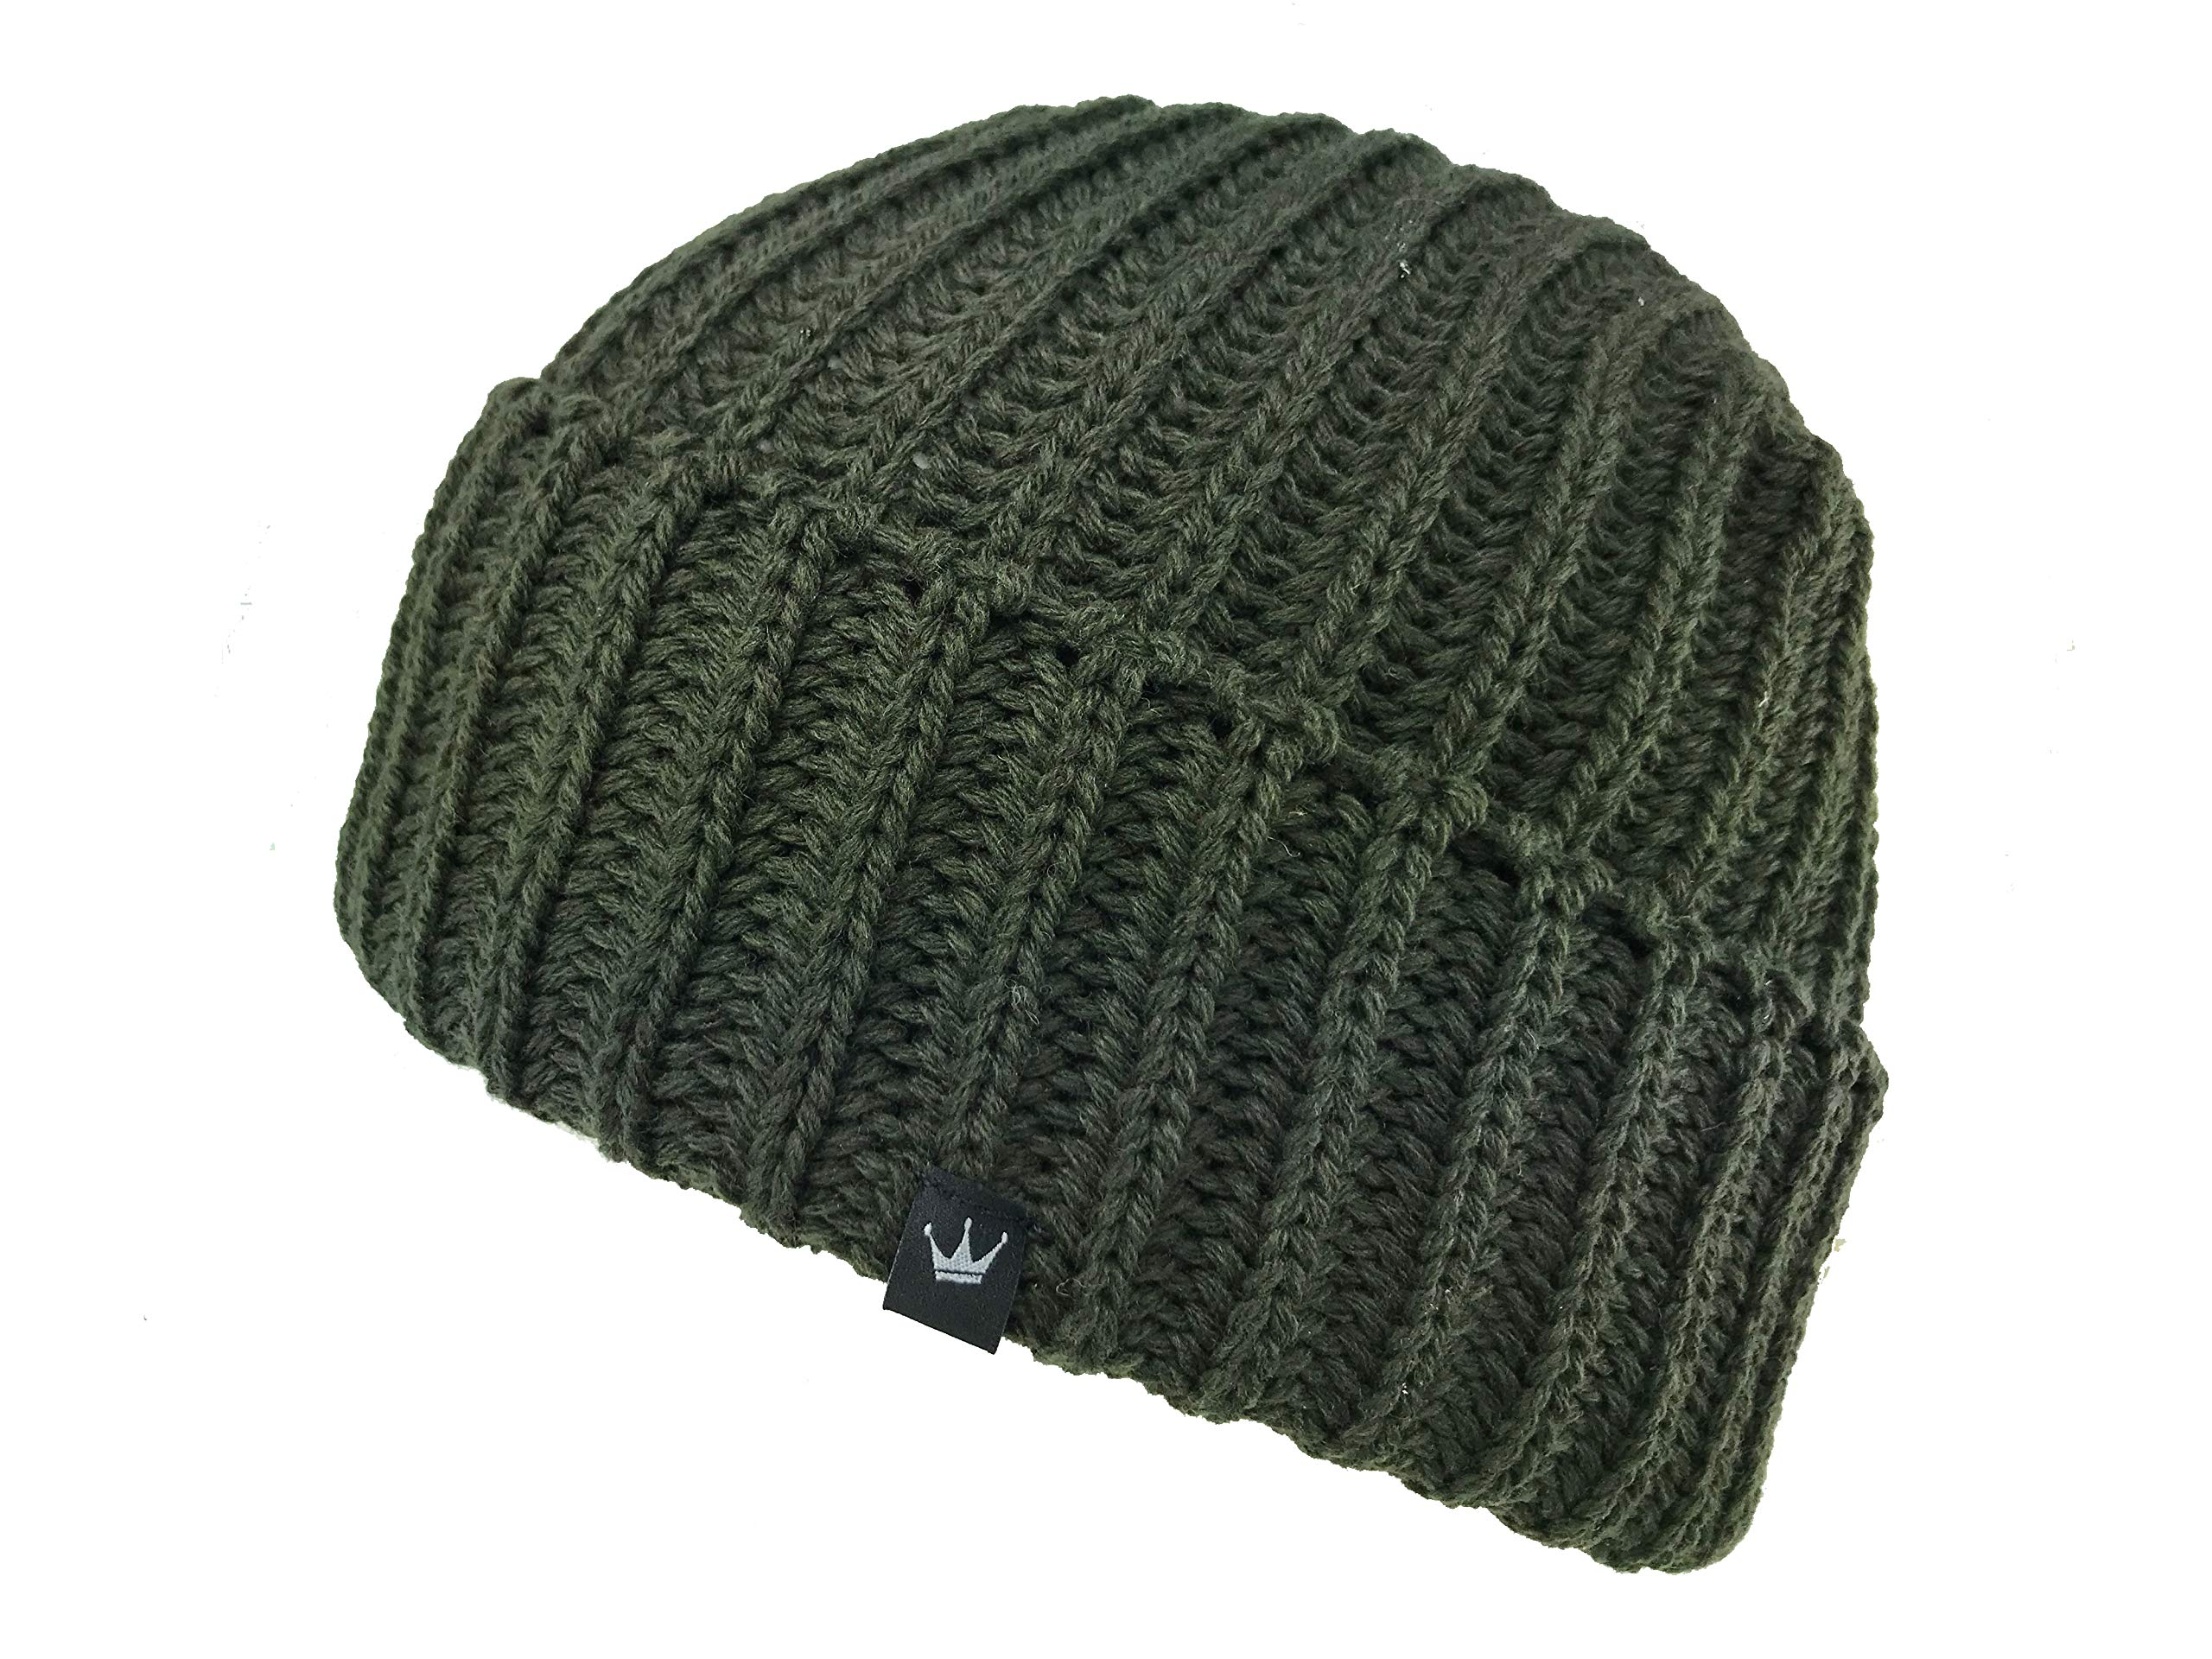 Icebox Knitting Dohm Otto Kelp Winter Wool Hat Skull Cap Beanie for Men and Women by Icebox Knitting